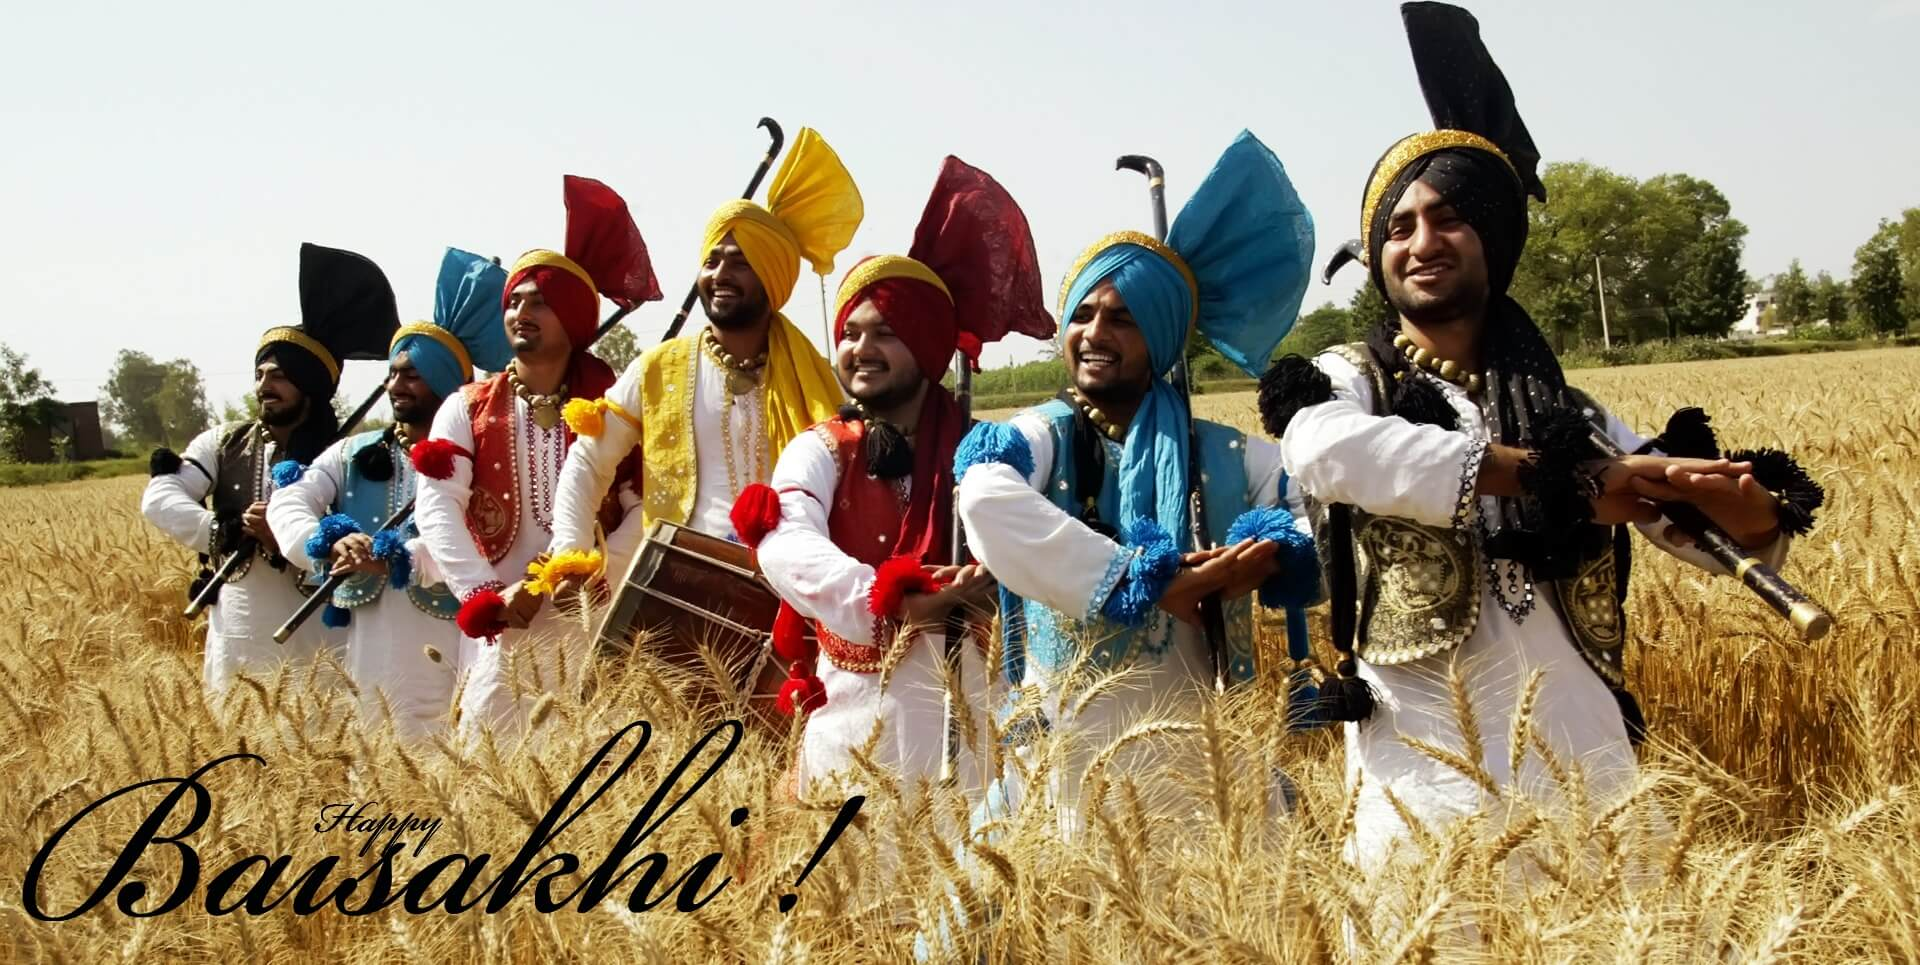 happy baisakhi 2017 poetries